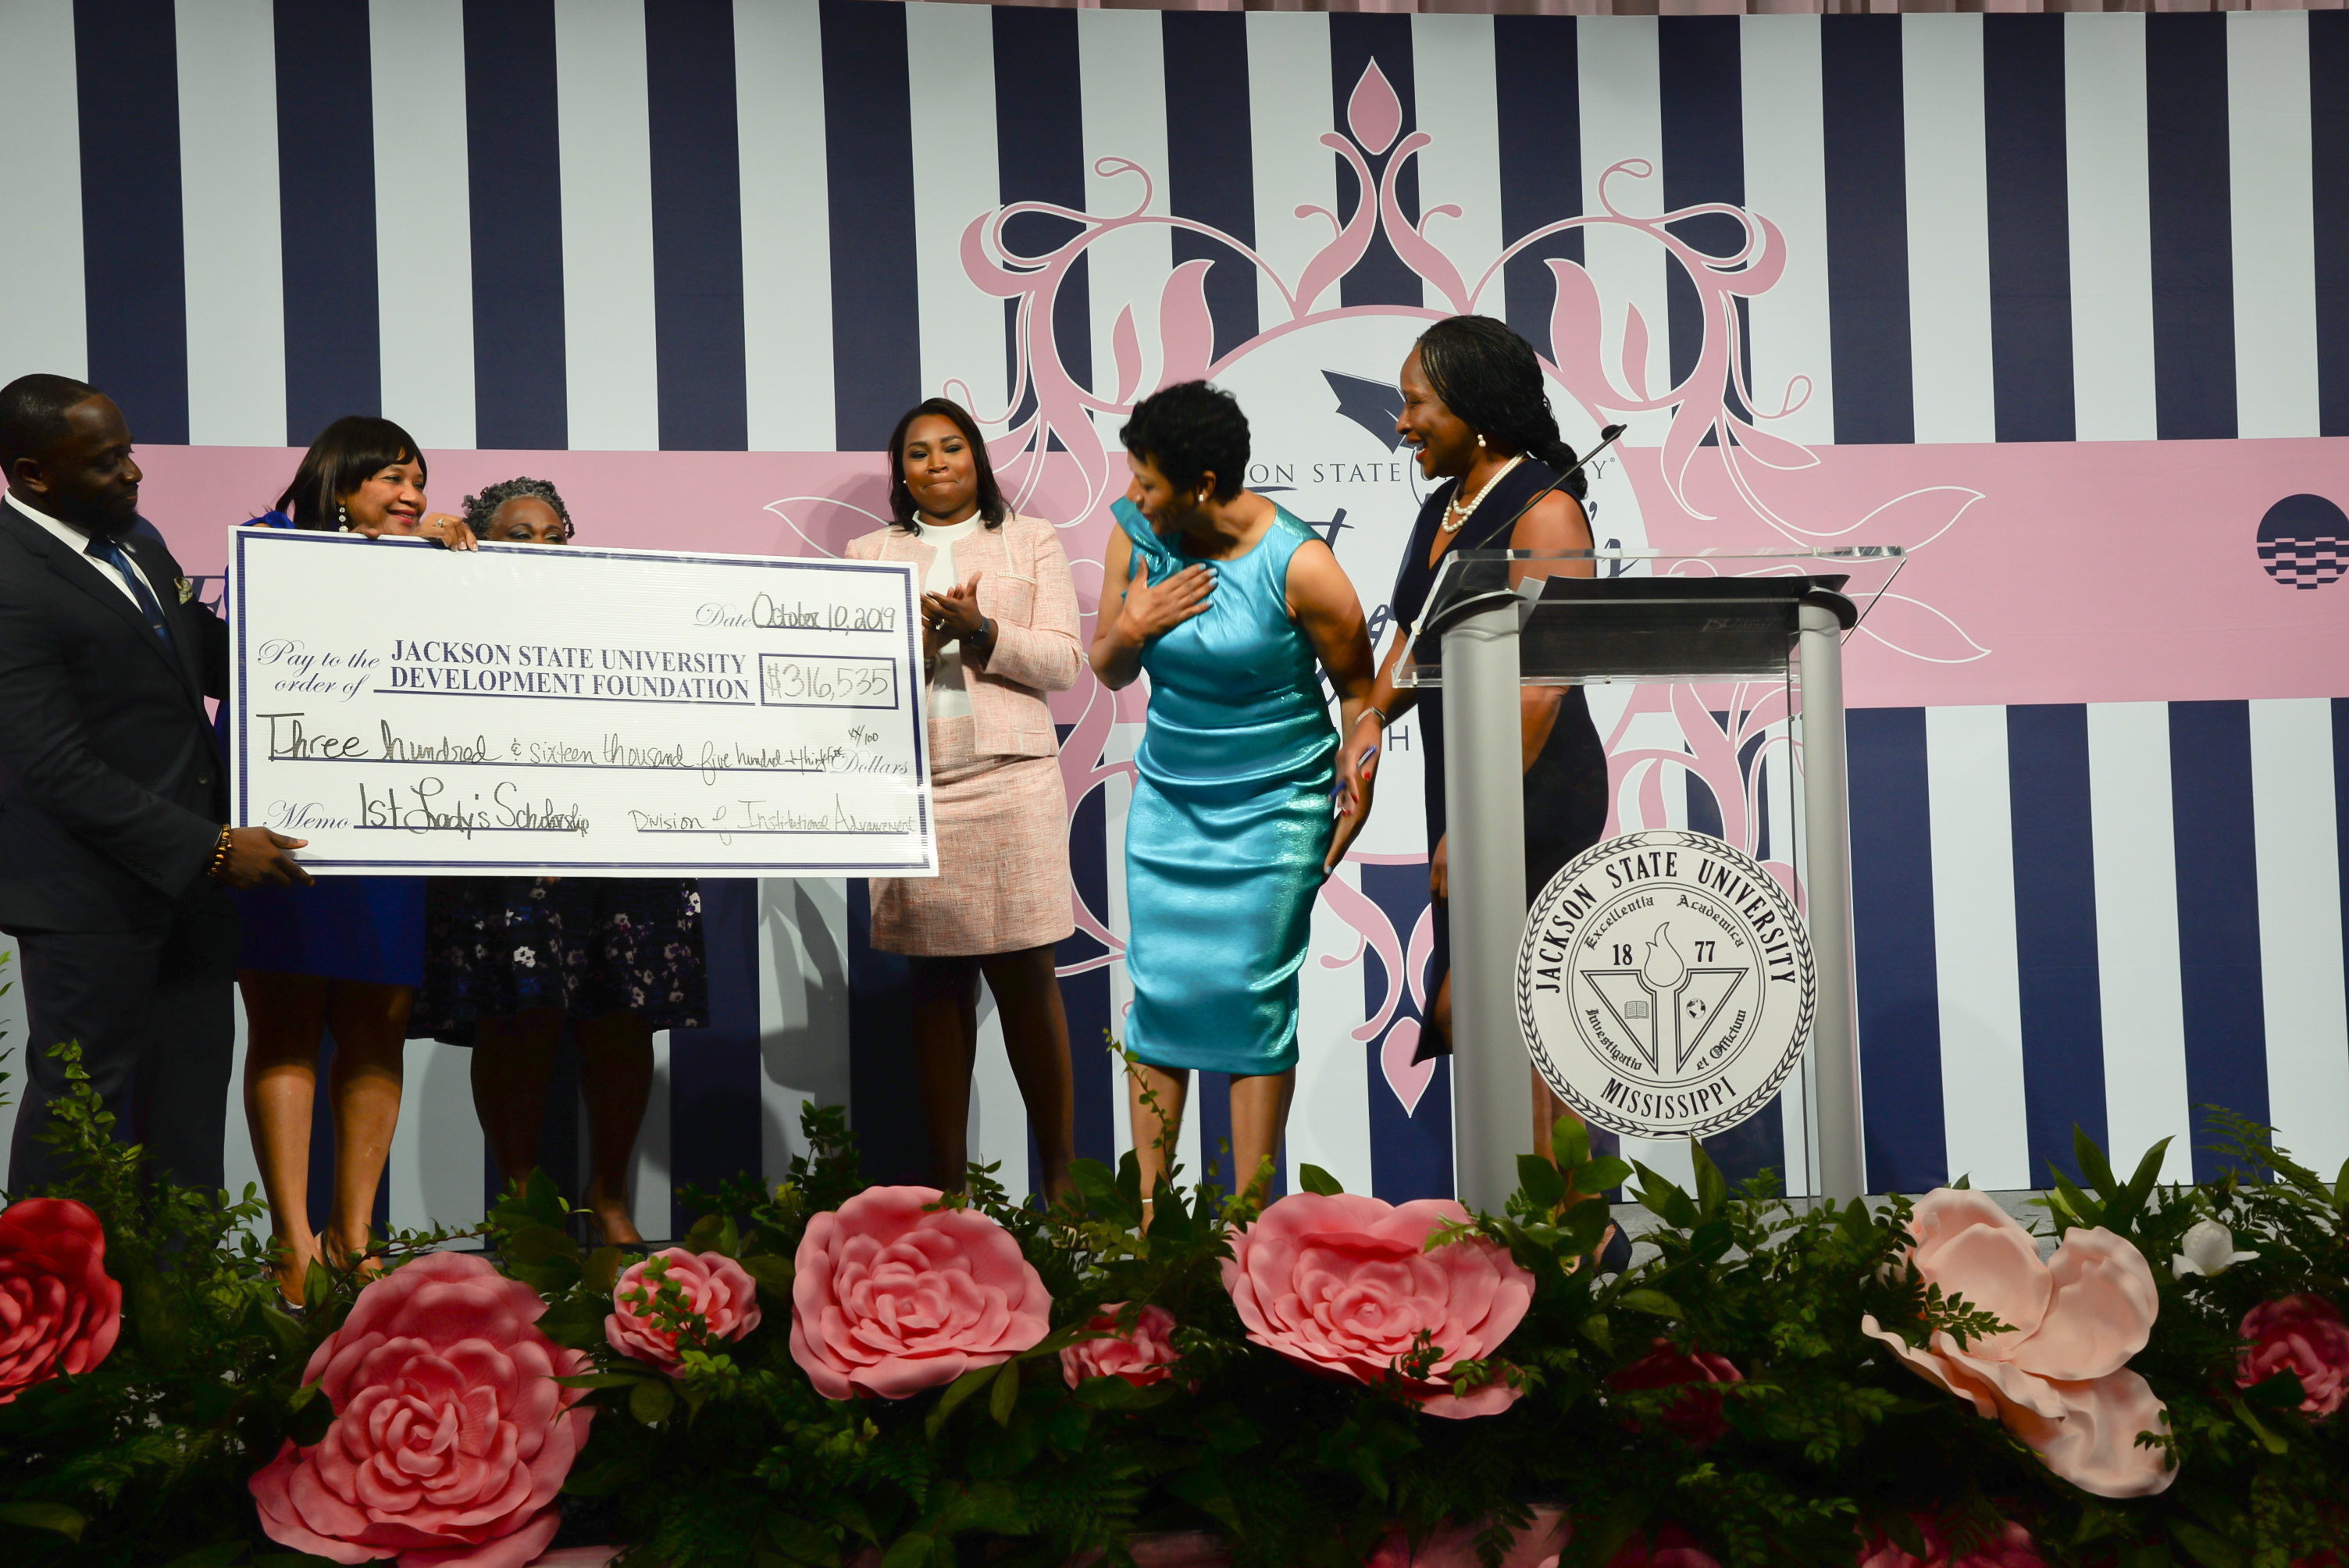 Astounded by the total amount raised for the second annual First Lady's Scholarship Luncheon, Deborah Bynum displays gratitude and joy during the on-stage check presentation.